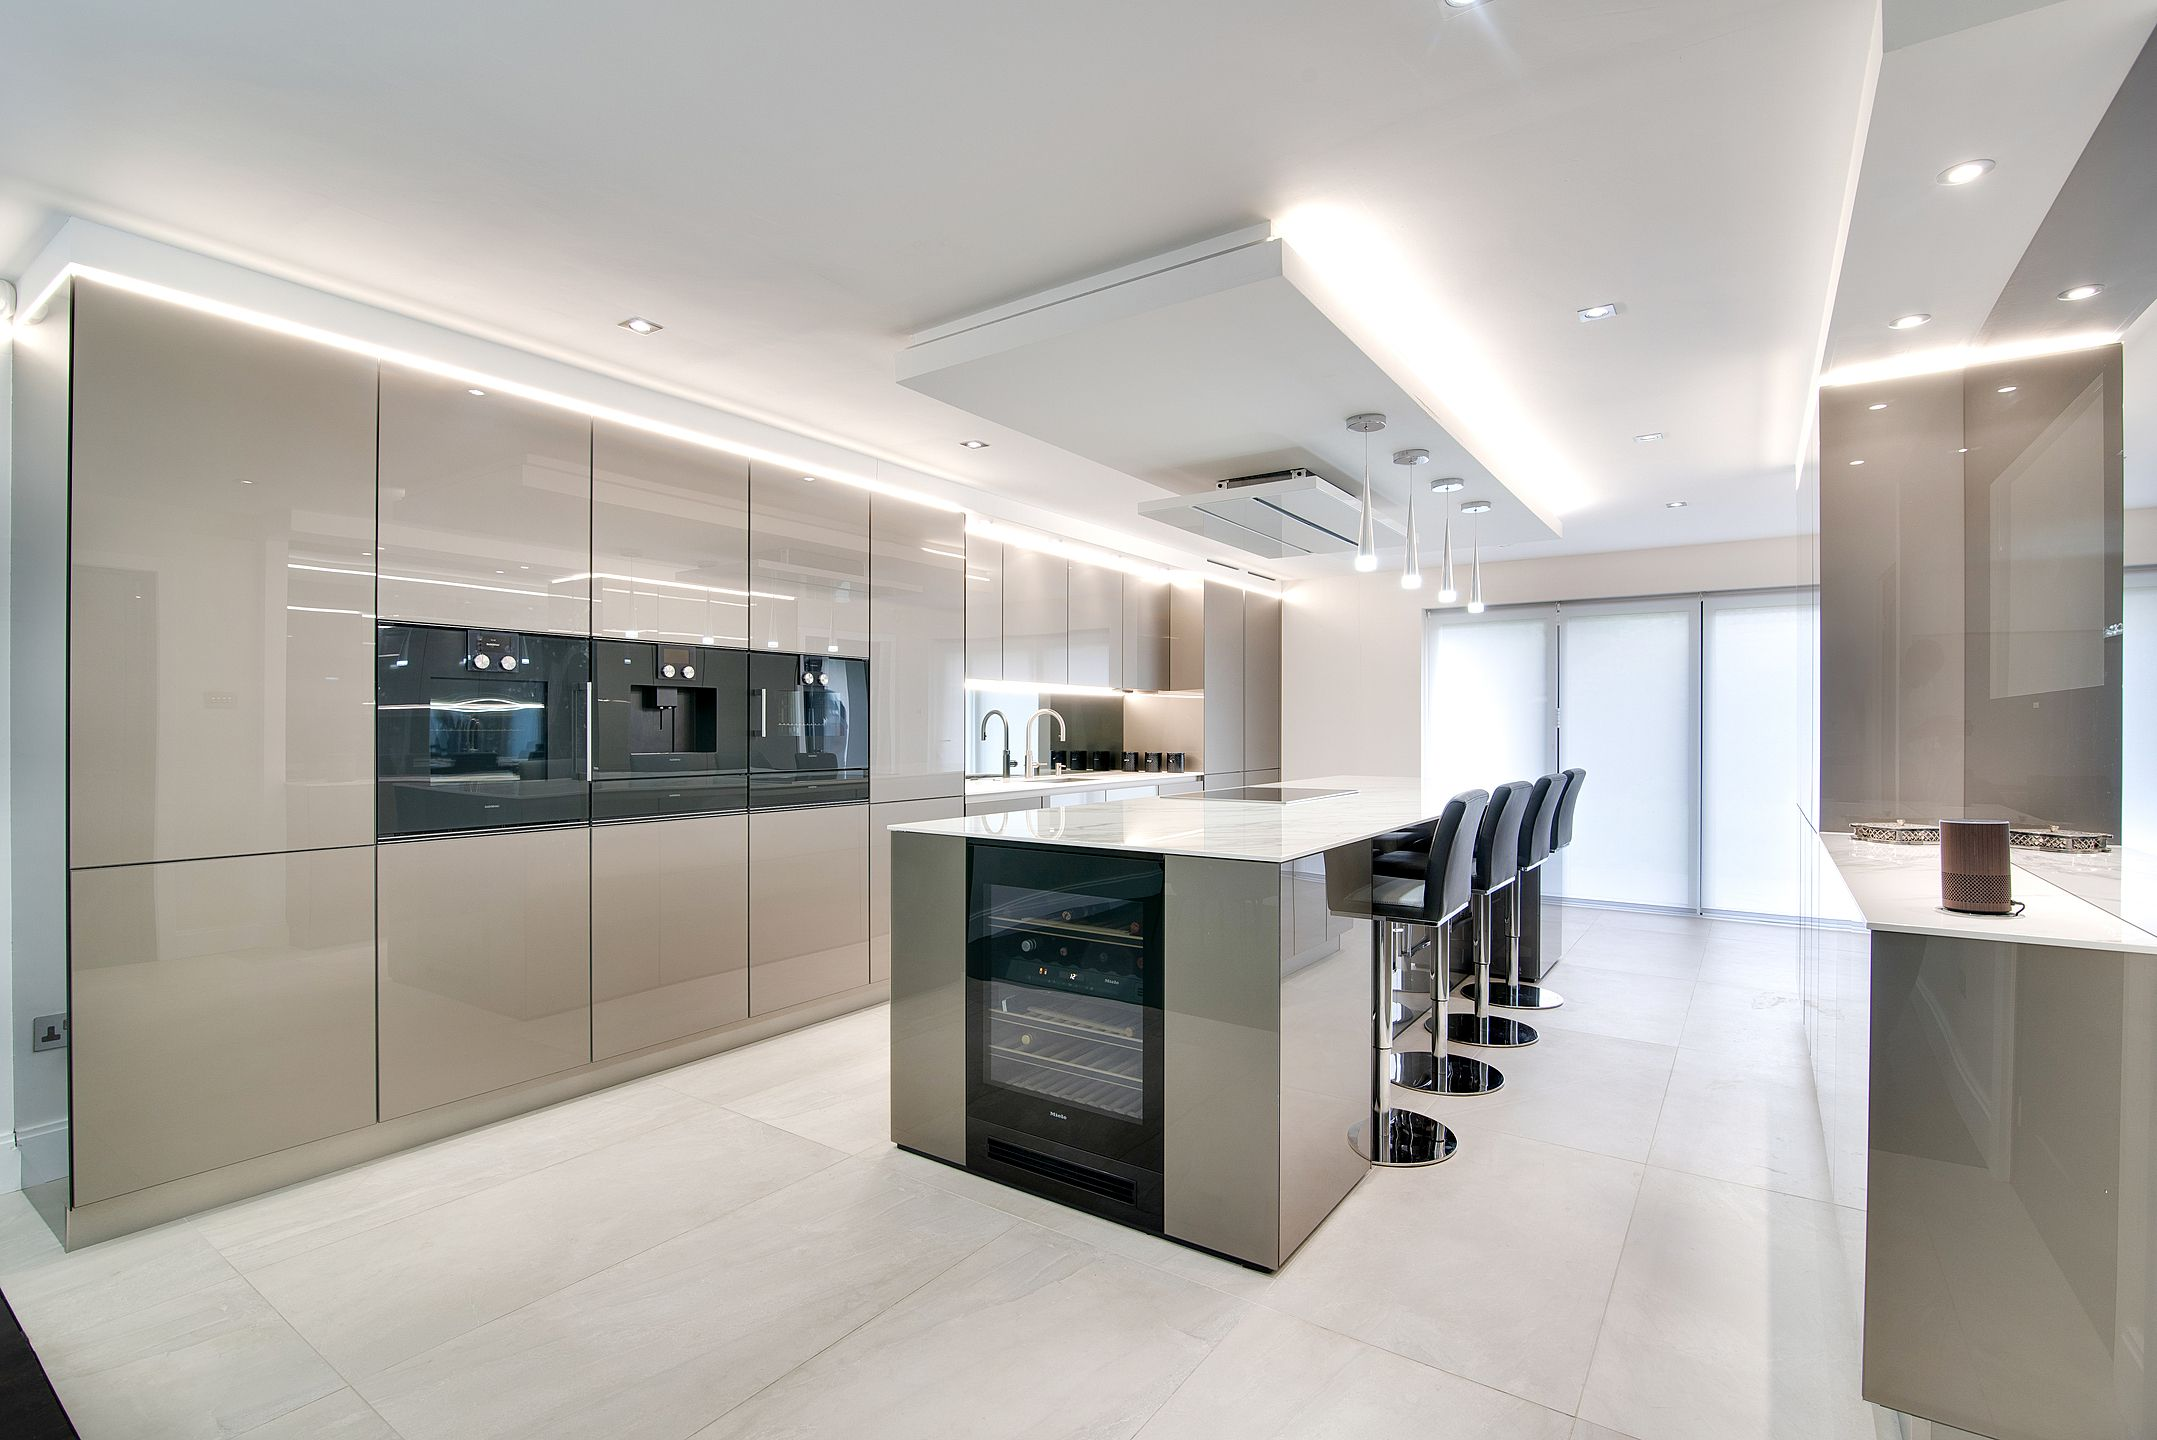 Stunning Contemporary Kitchen Units We Love The Floor To Ceiling Cabinets And The Lighting A Modern Kitchen Cupboards Modern Kitchen Floor To Ceiling Cabinets